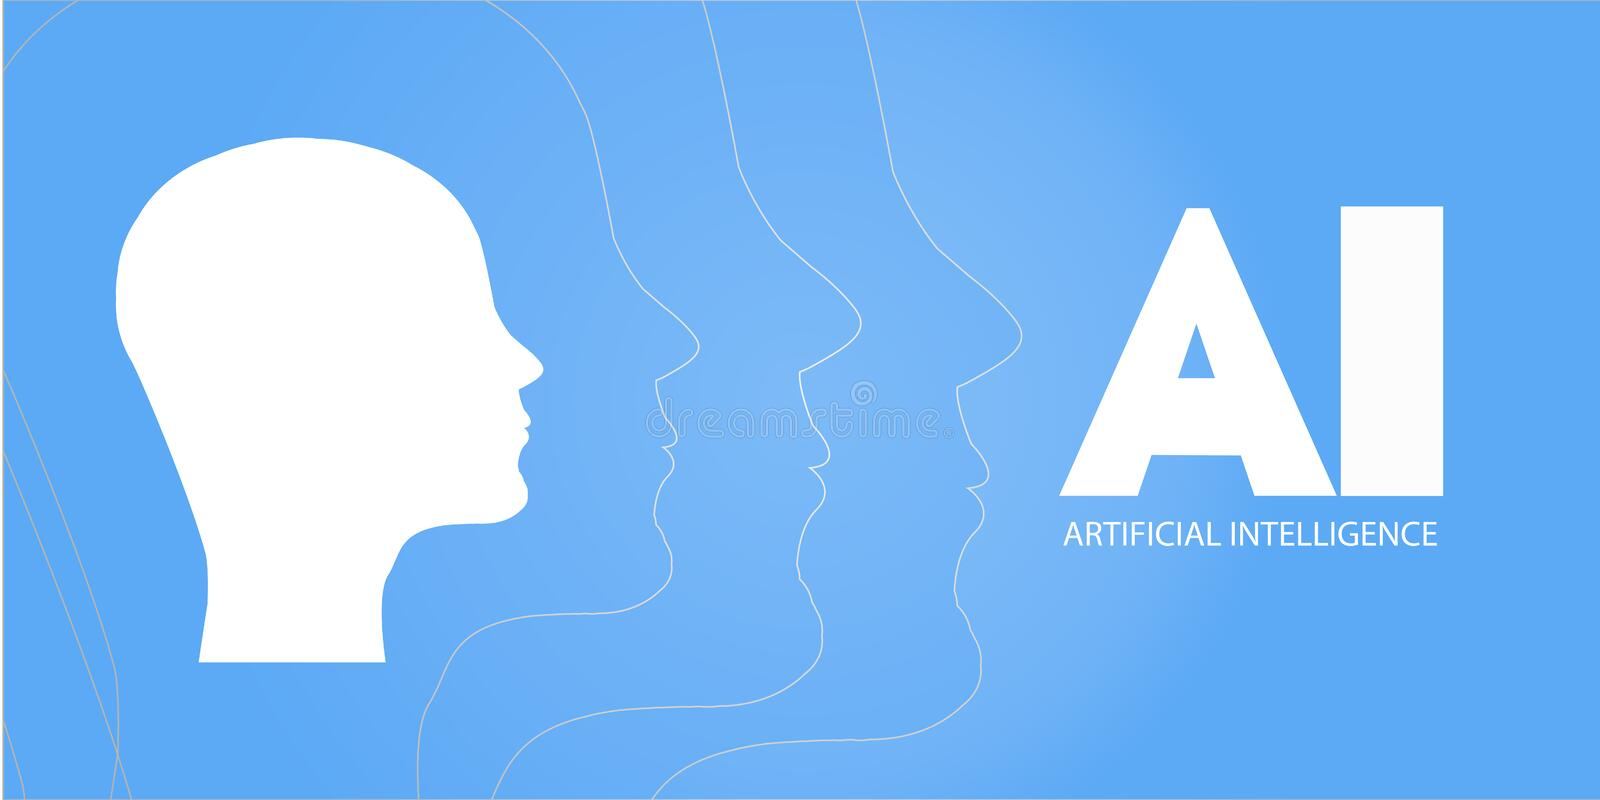 AI, Artificial Intelligence, Deep Learning and Future Technology Concept Design - Vector Illustration. AI - Artificial Intelligenc. AI, Artificial Intelligence vector illustration